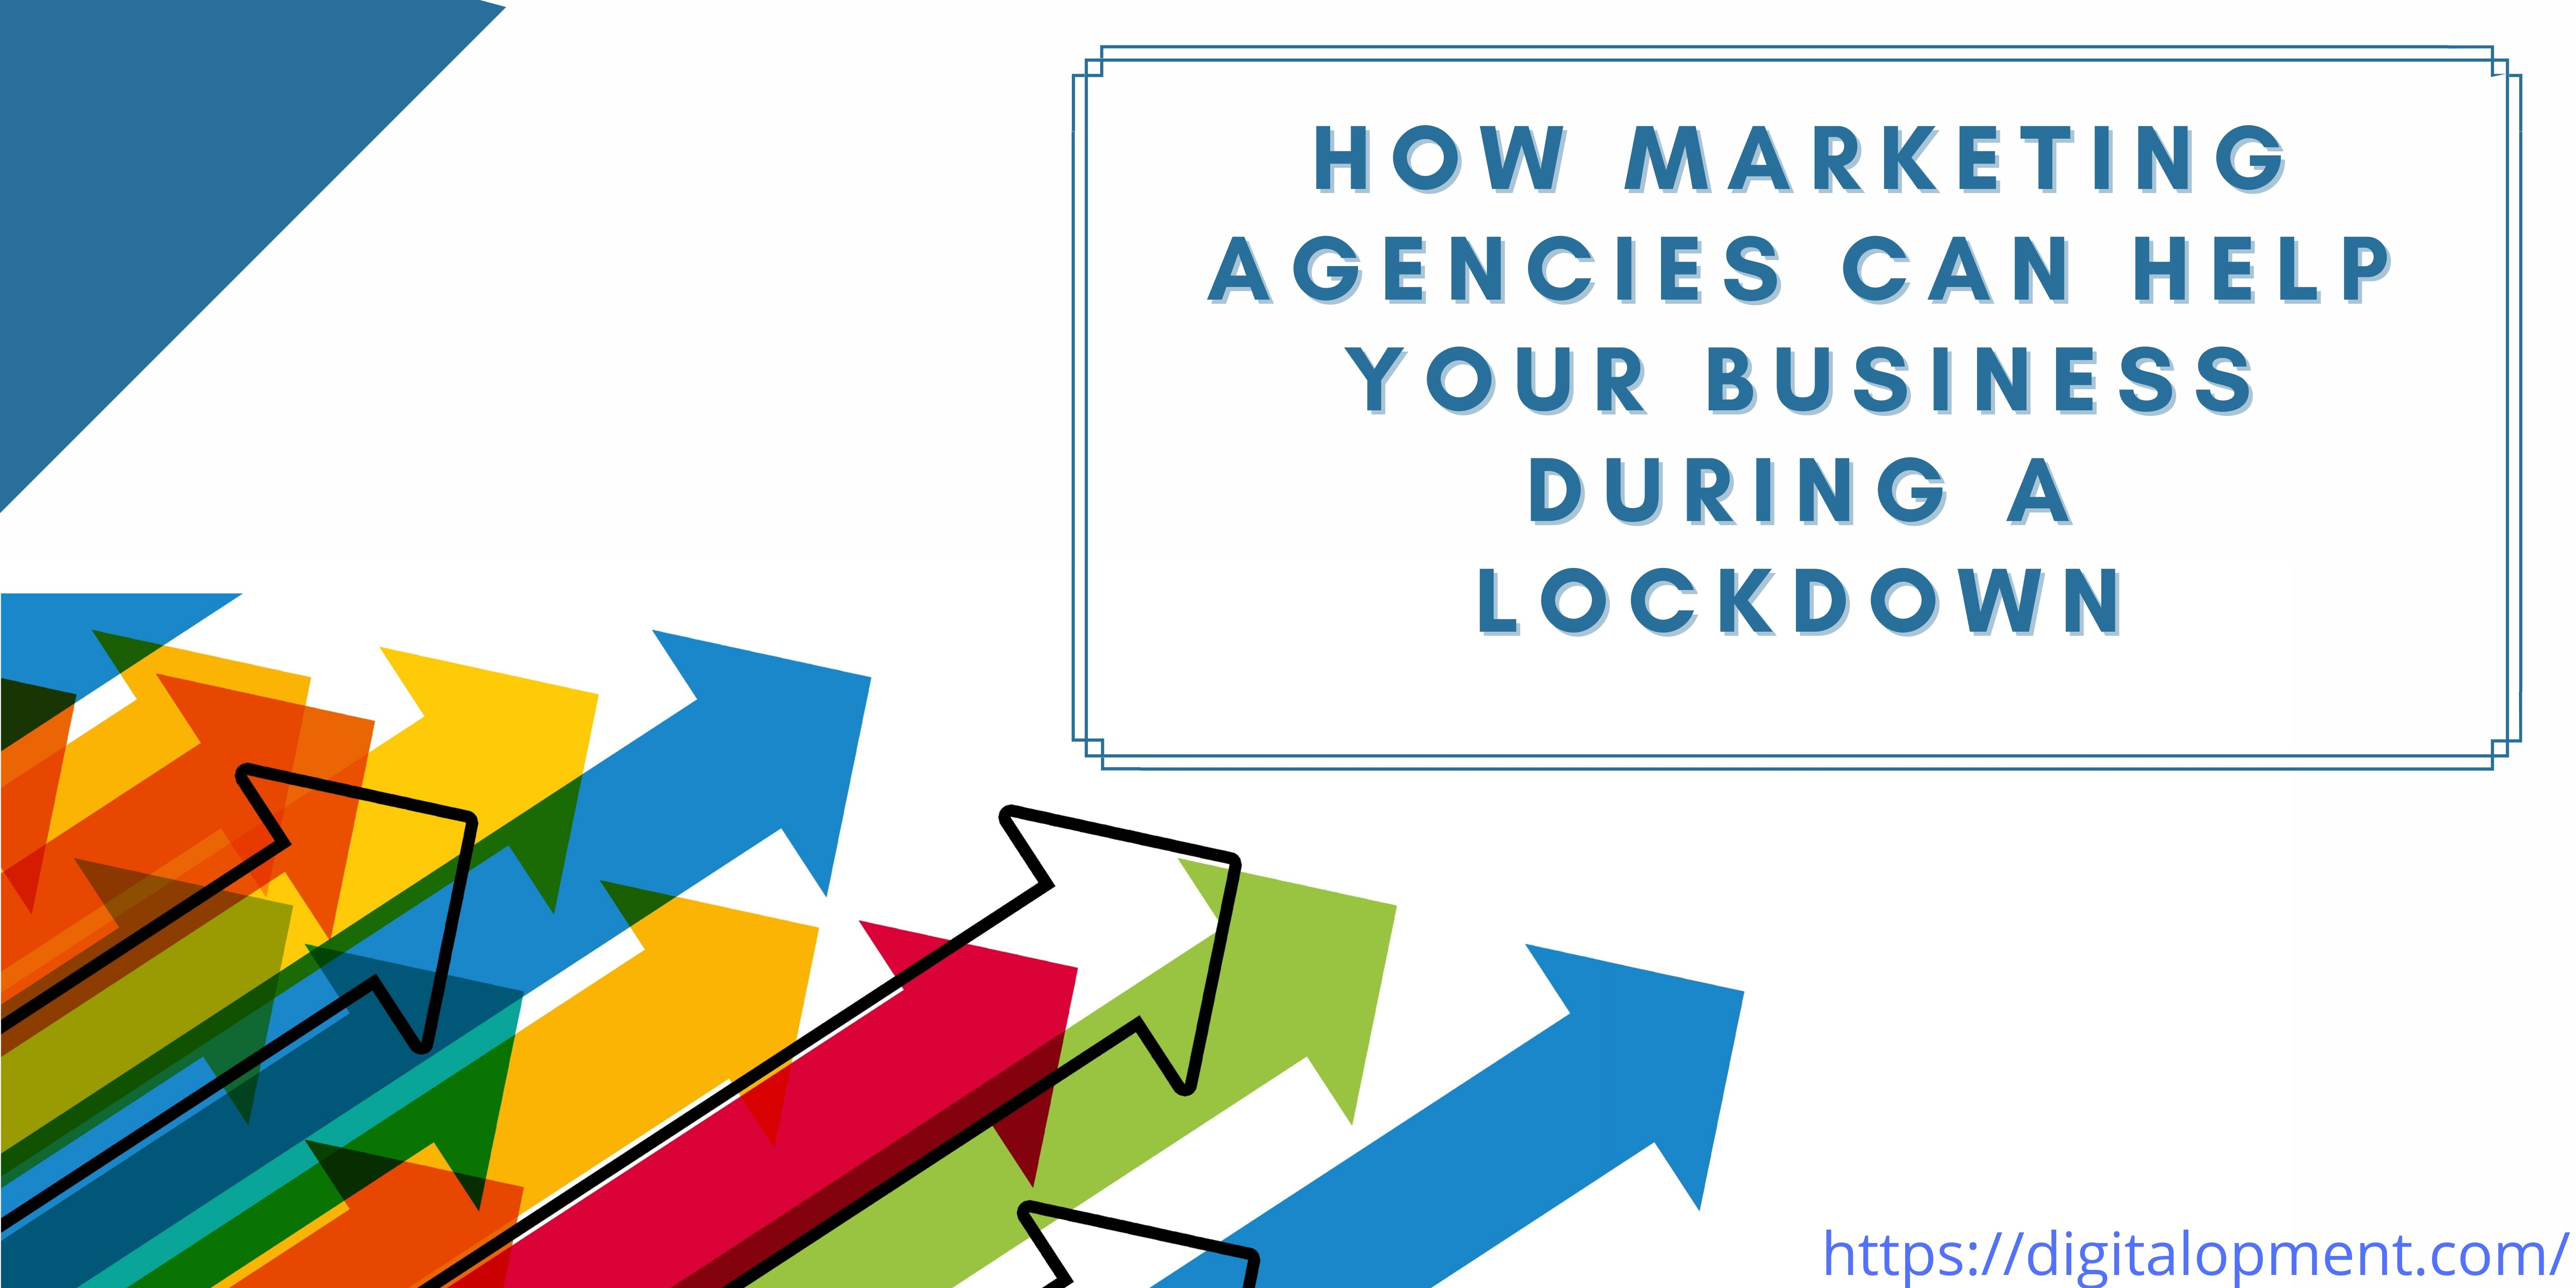 HOW MARKETING AGENCIES CAN HELP YOUR BUSINESS DURING A LOCKDOWN     https://digitalopment.com/